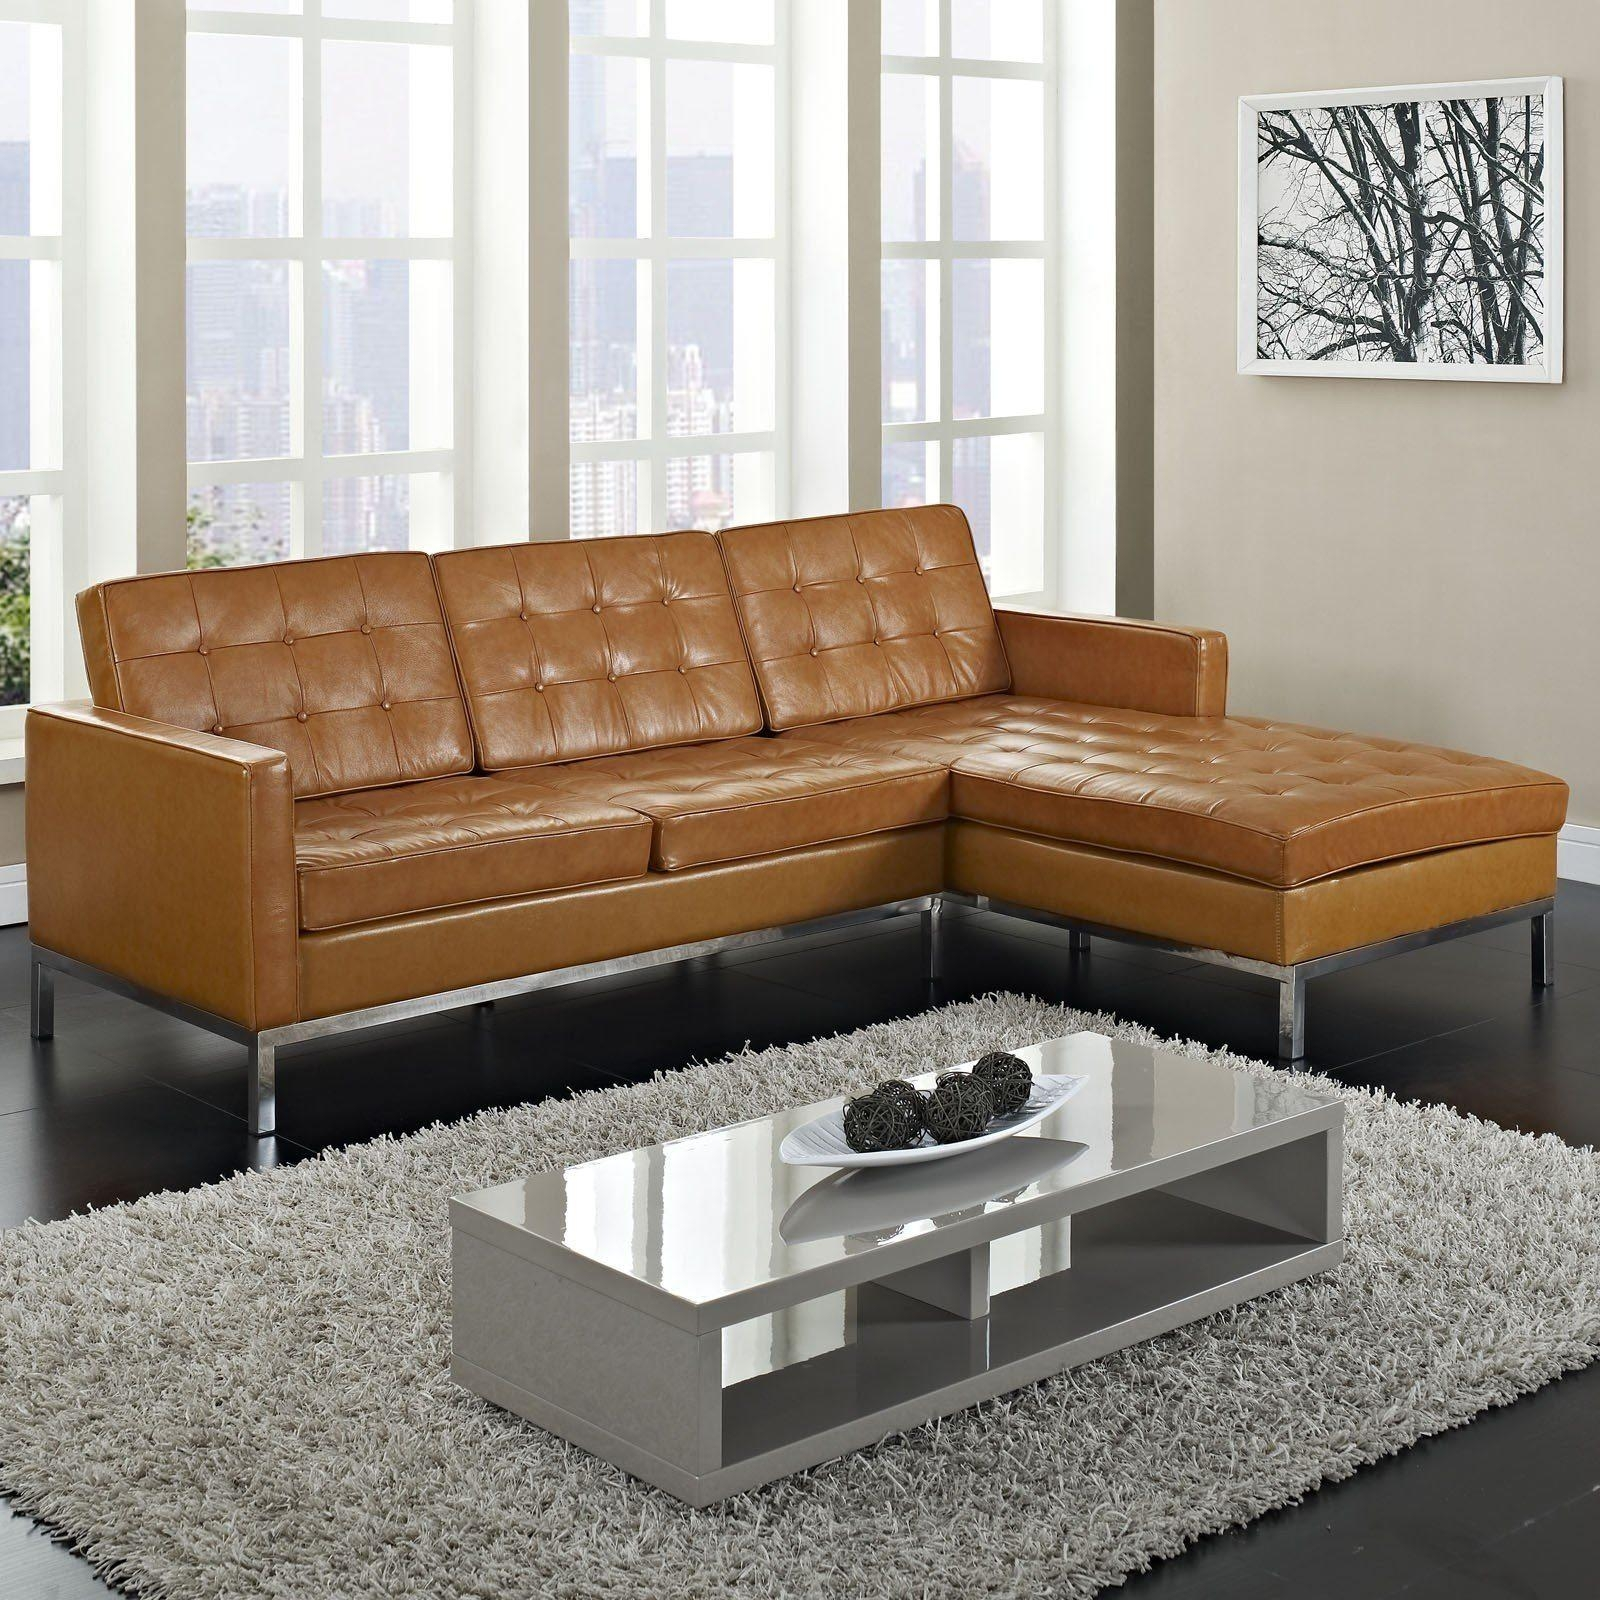 Furniture & Sofa: Perfect Small Spaces Configurable Sectional Sofa In Mini Sectionals (Image 4 of 20)